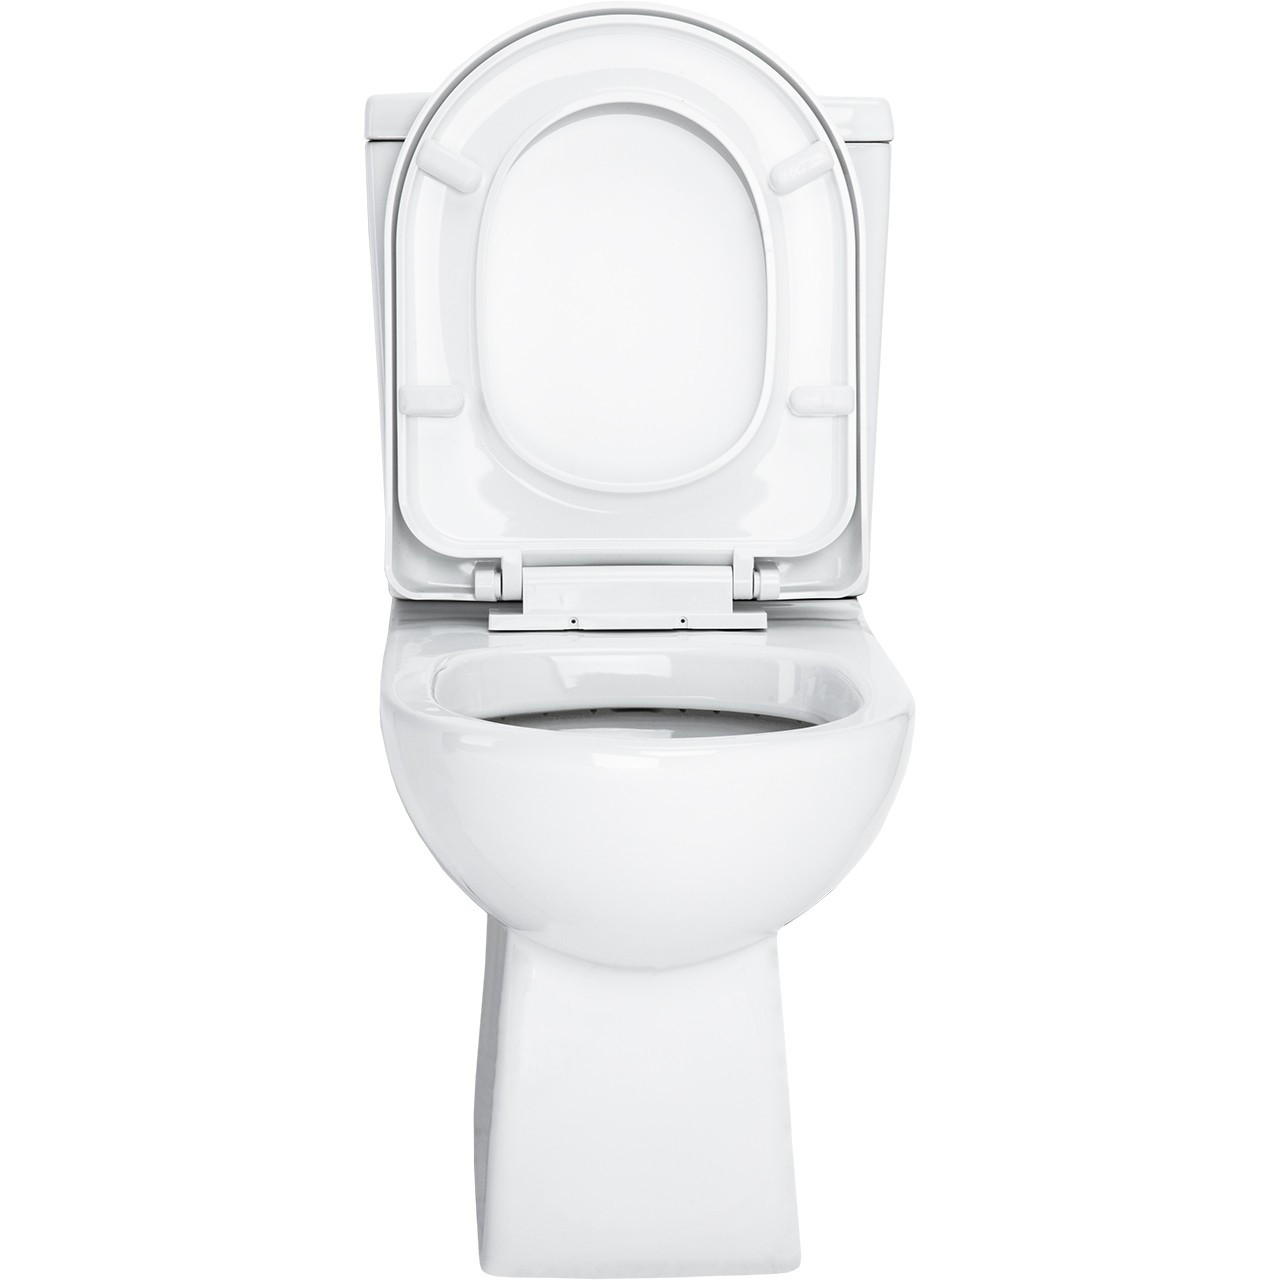 Ailsa Close Couple Toilet with Soft Closing Seat